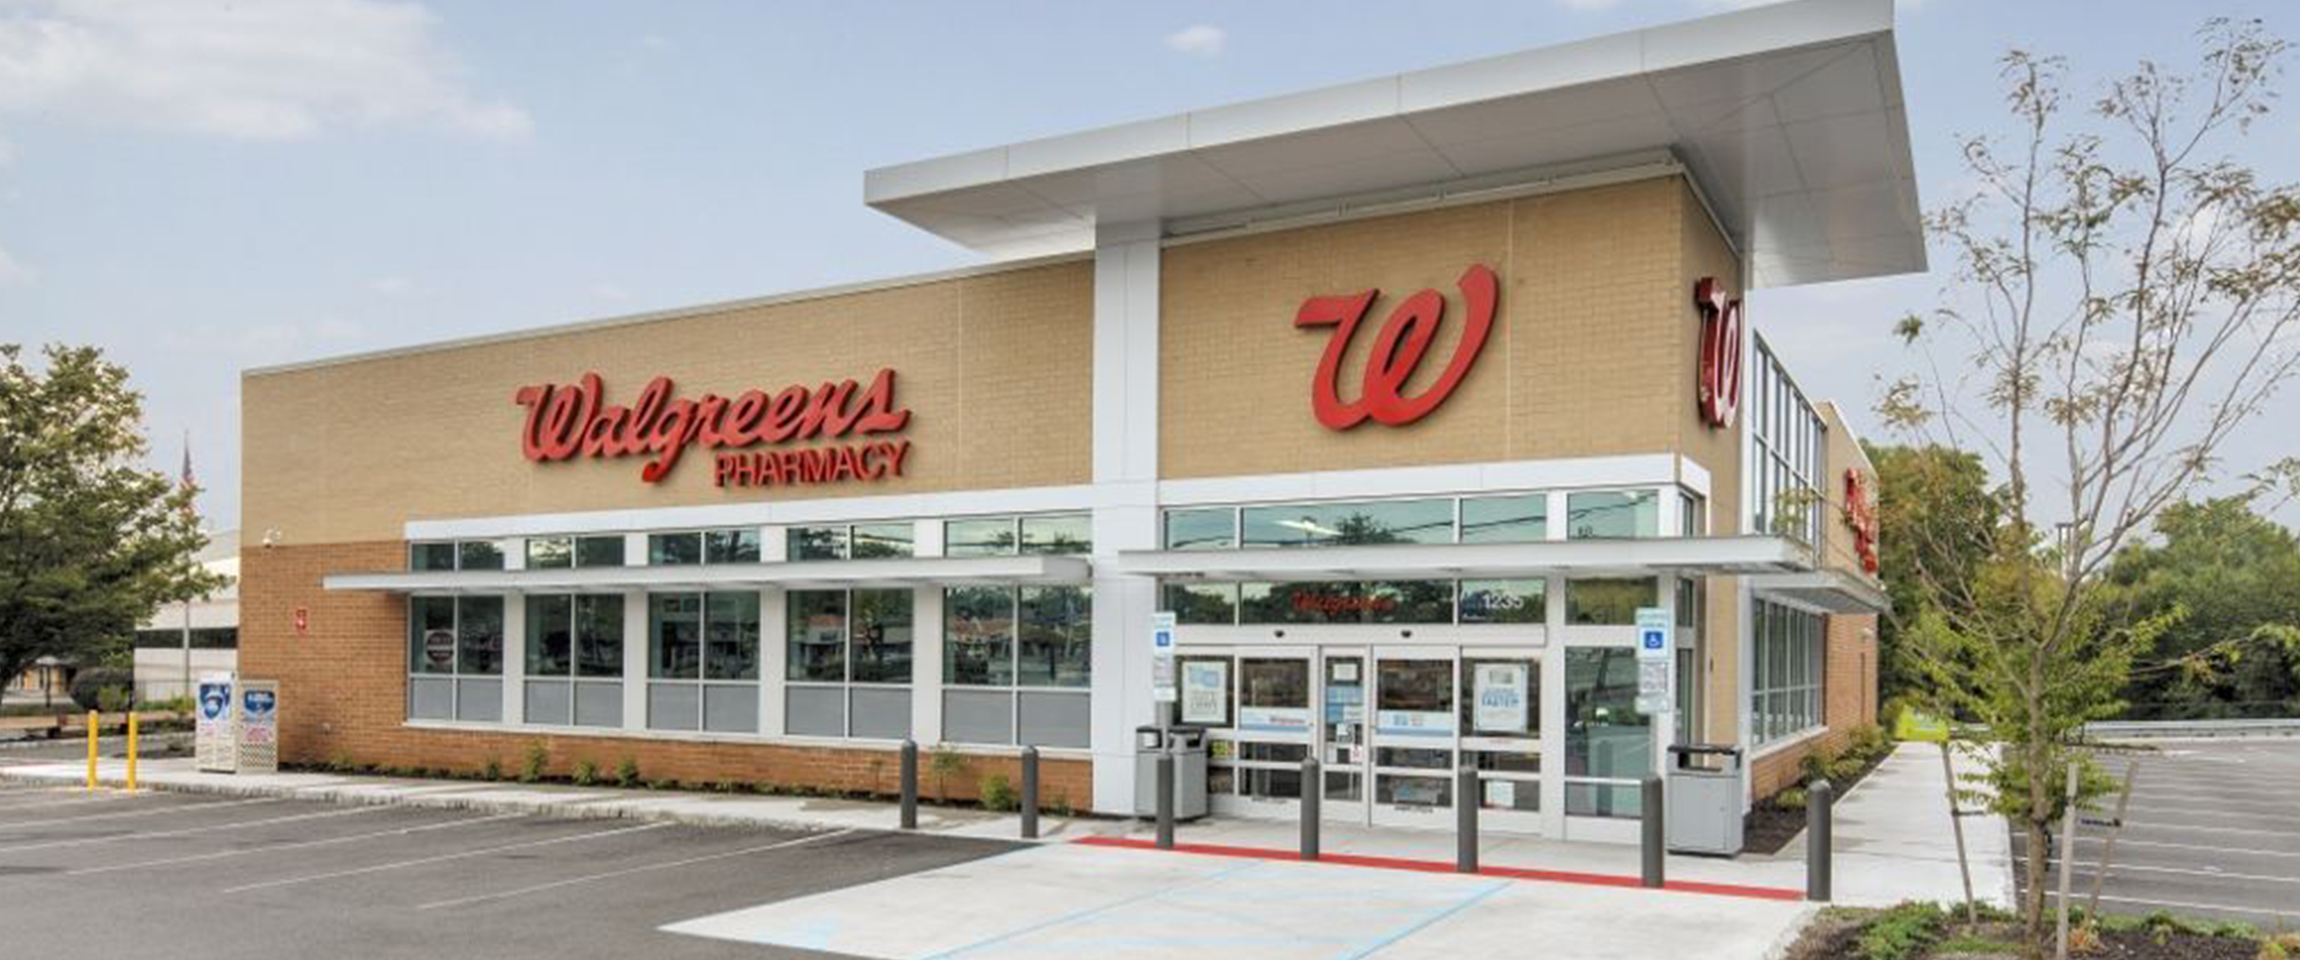 Beauty Industry Execs Applaud Walgreens CEO Choice